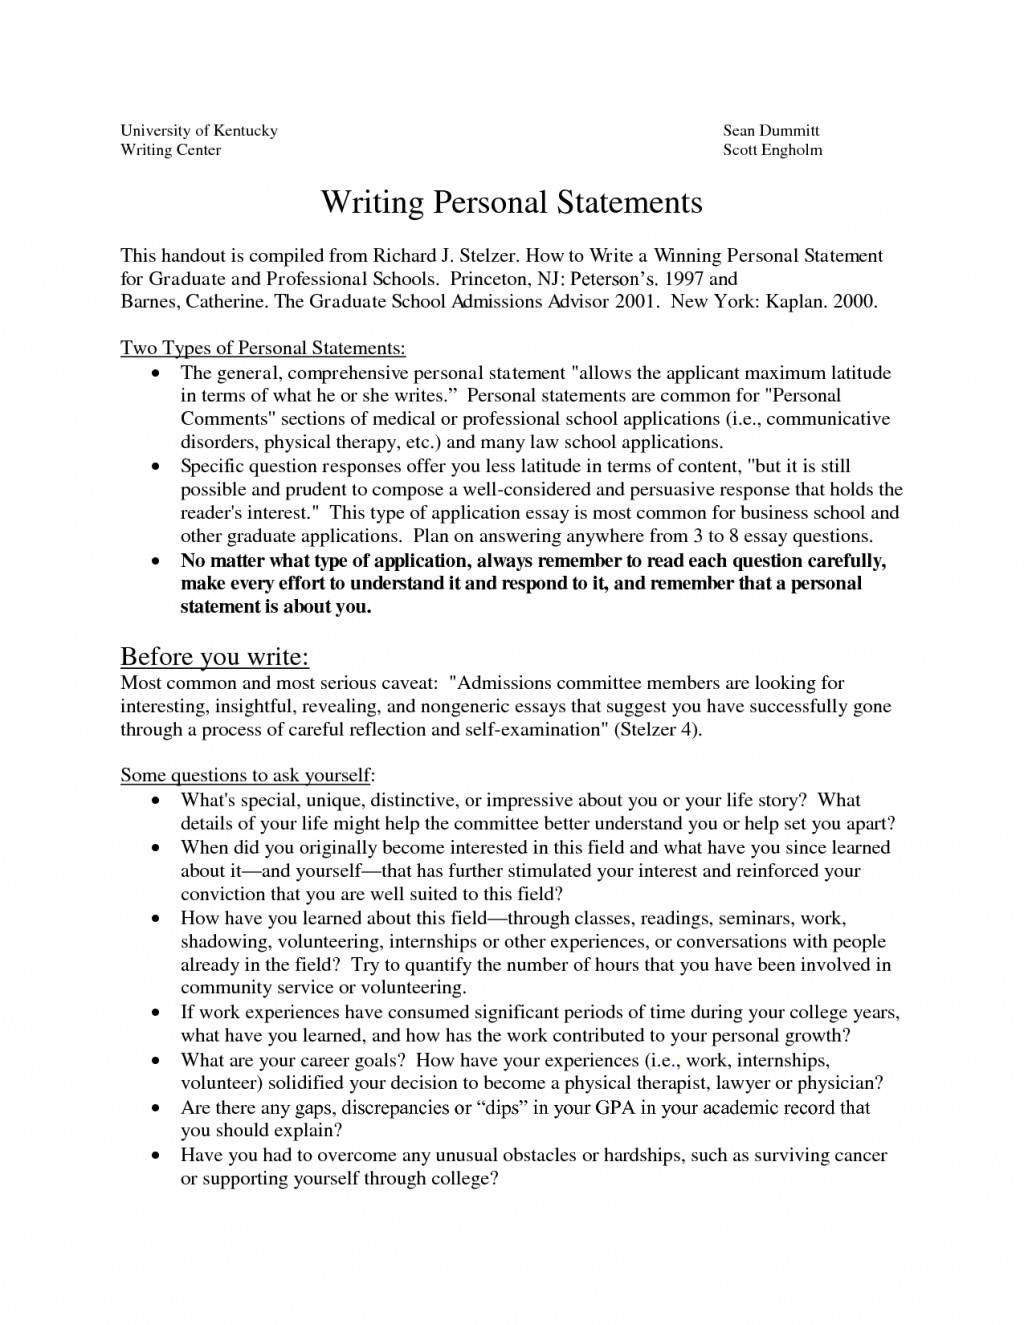 001 Essay Example Personal Statement For Graduate School Sample Wonderful Essays Pdf Psychology Large